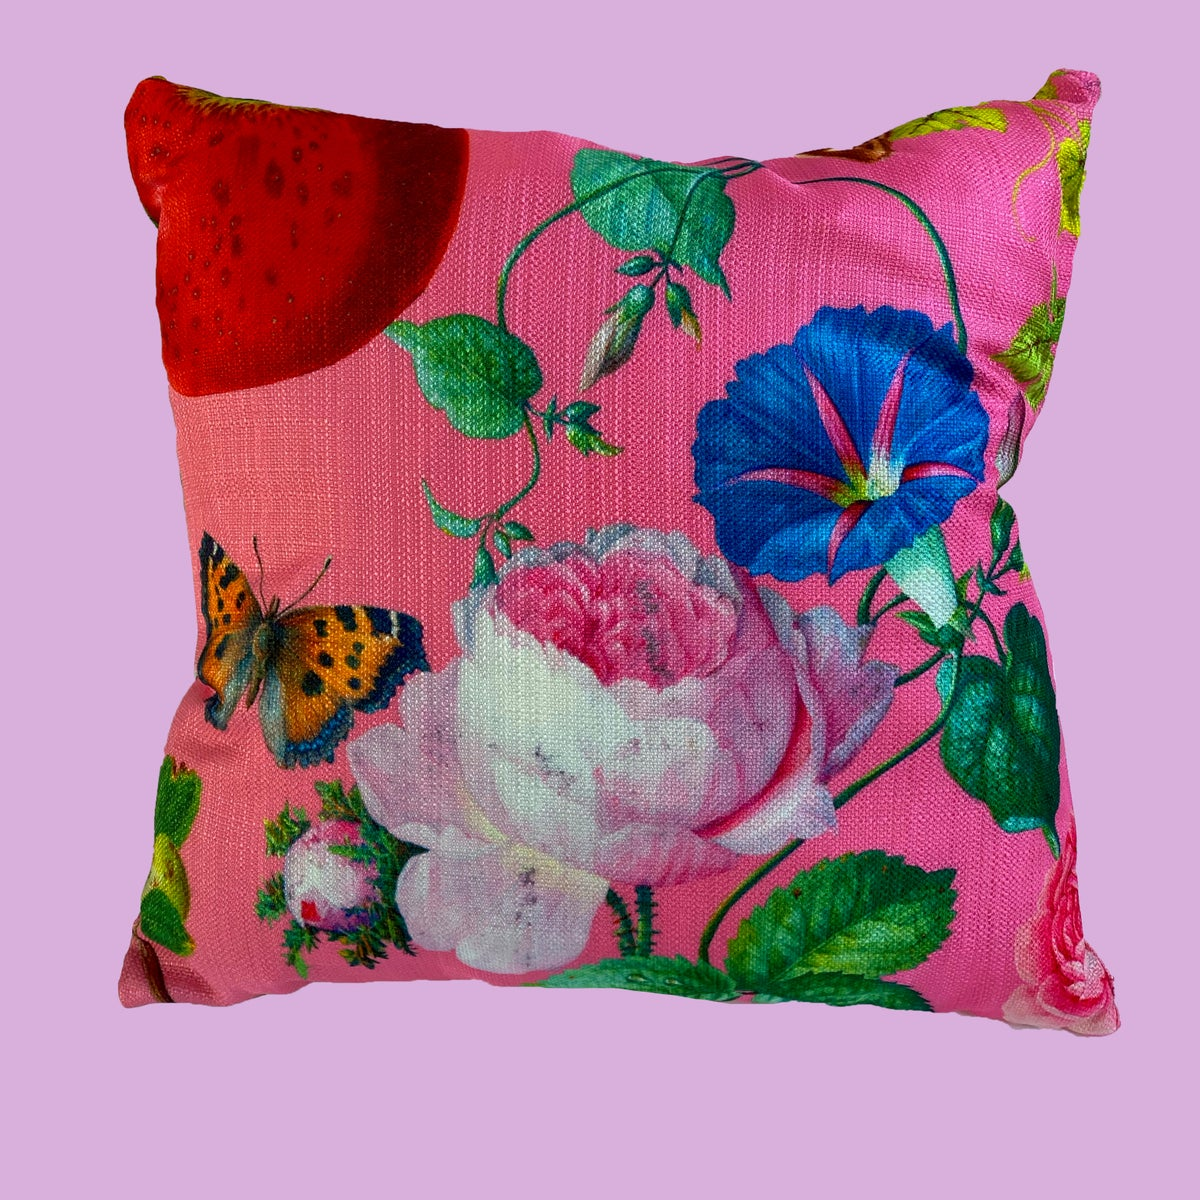 Image of Fruits from the Garden and Field - Throw Pillows